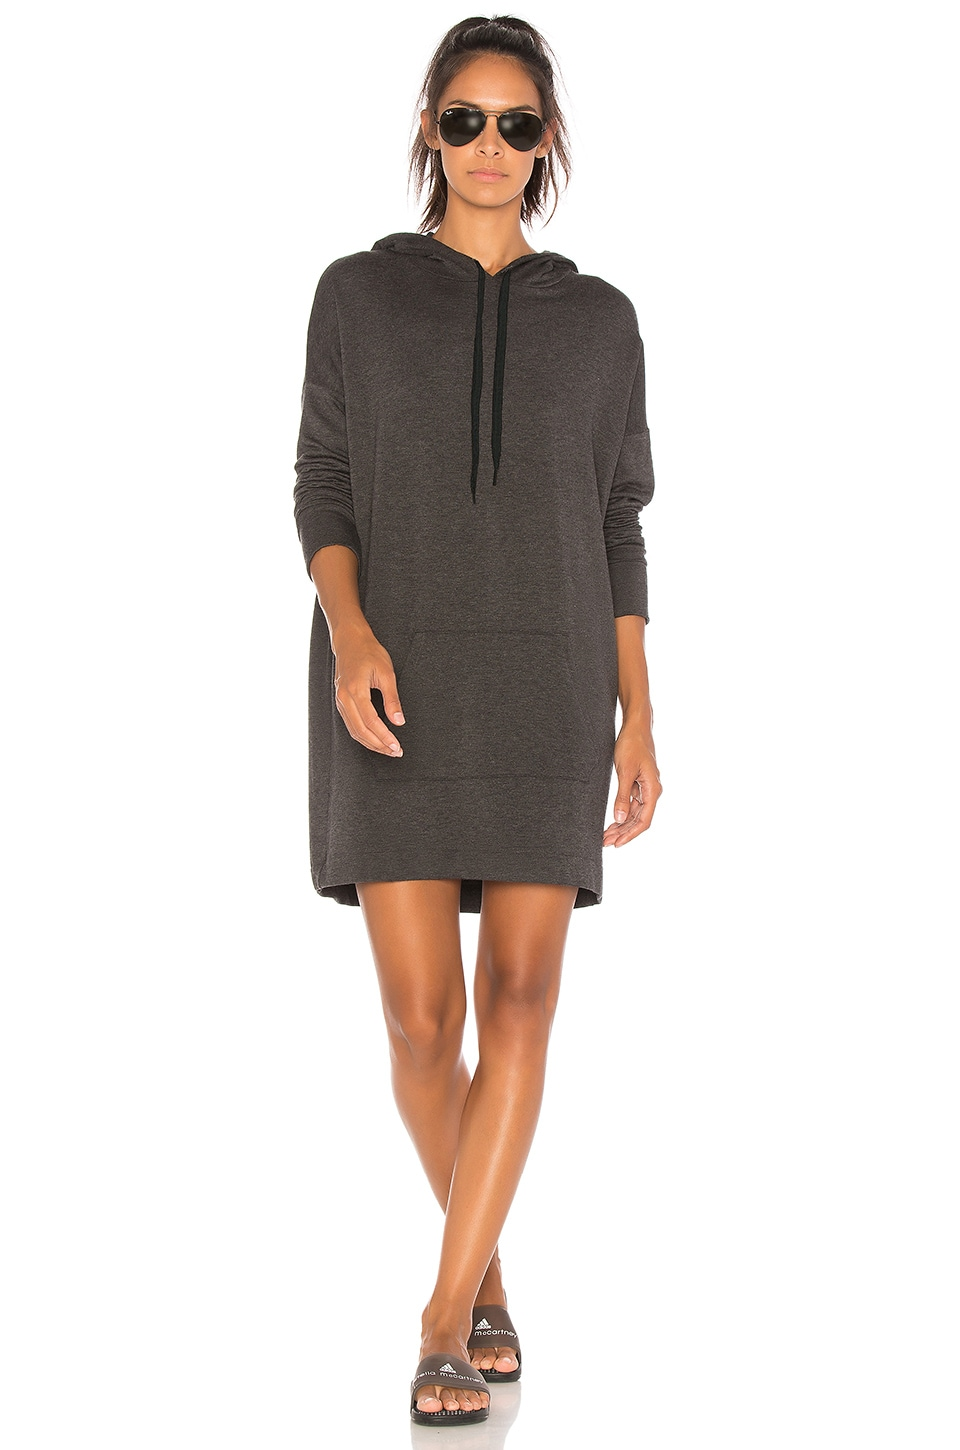 Hood Times Sweatshirt Dress by Beyond Yoga